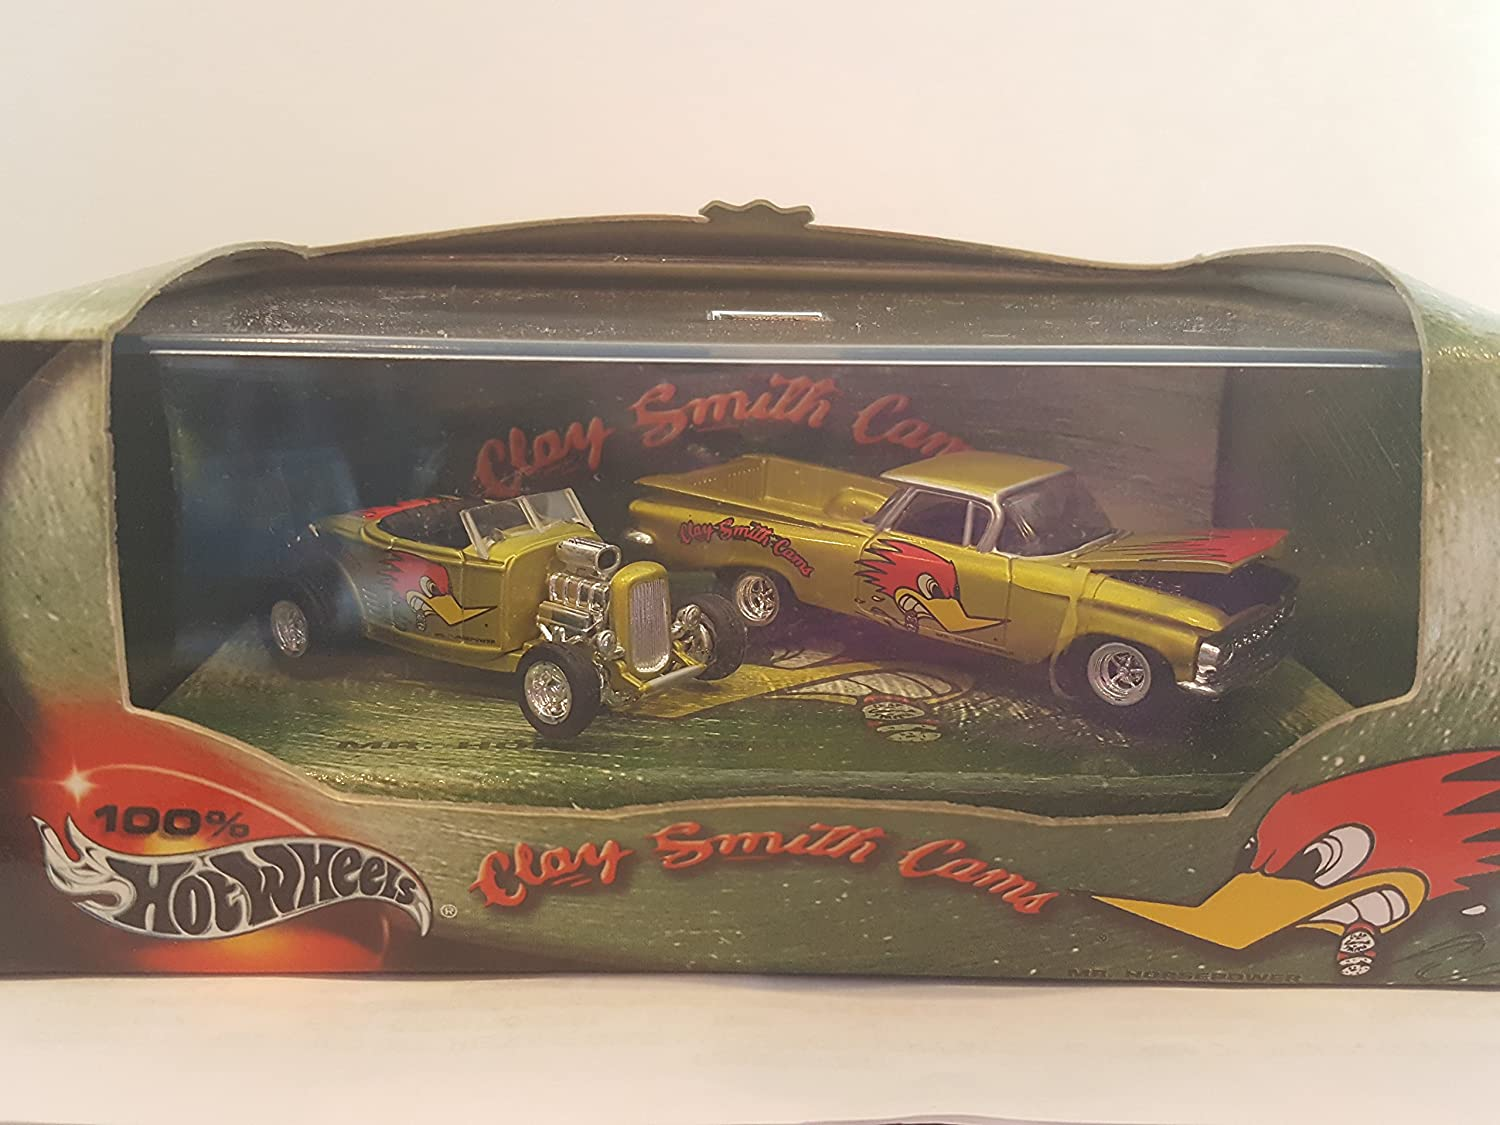 Hot Wheels Clay Smith Cams 2-Car Boxed Set 58 El Camino & 32 Ford Roadster Mr Horsepower by Mattel B005I4E8TC Öffnen Sie das Interesse und die Innovation Ihres Kindes, aber auch die Unschuld von Kindern, kindlich, glücklich     | Smart